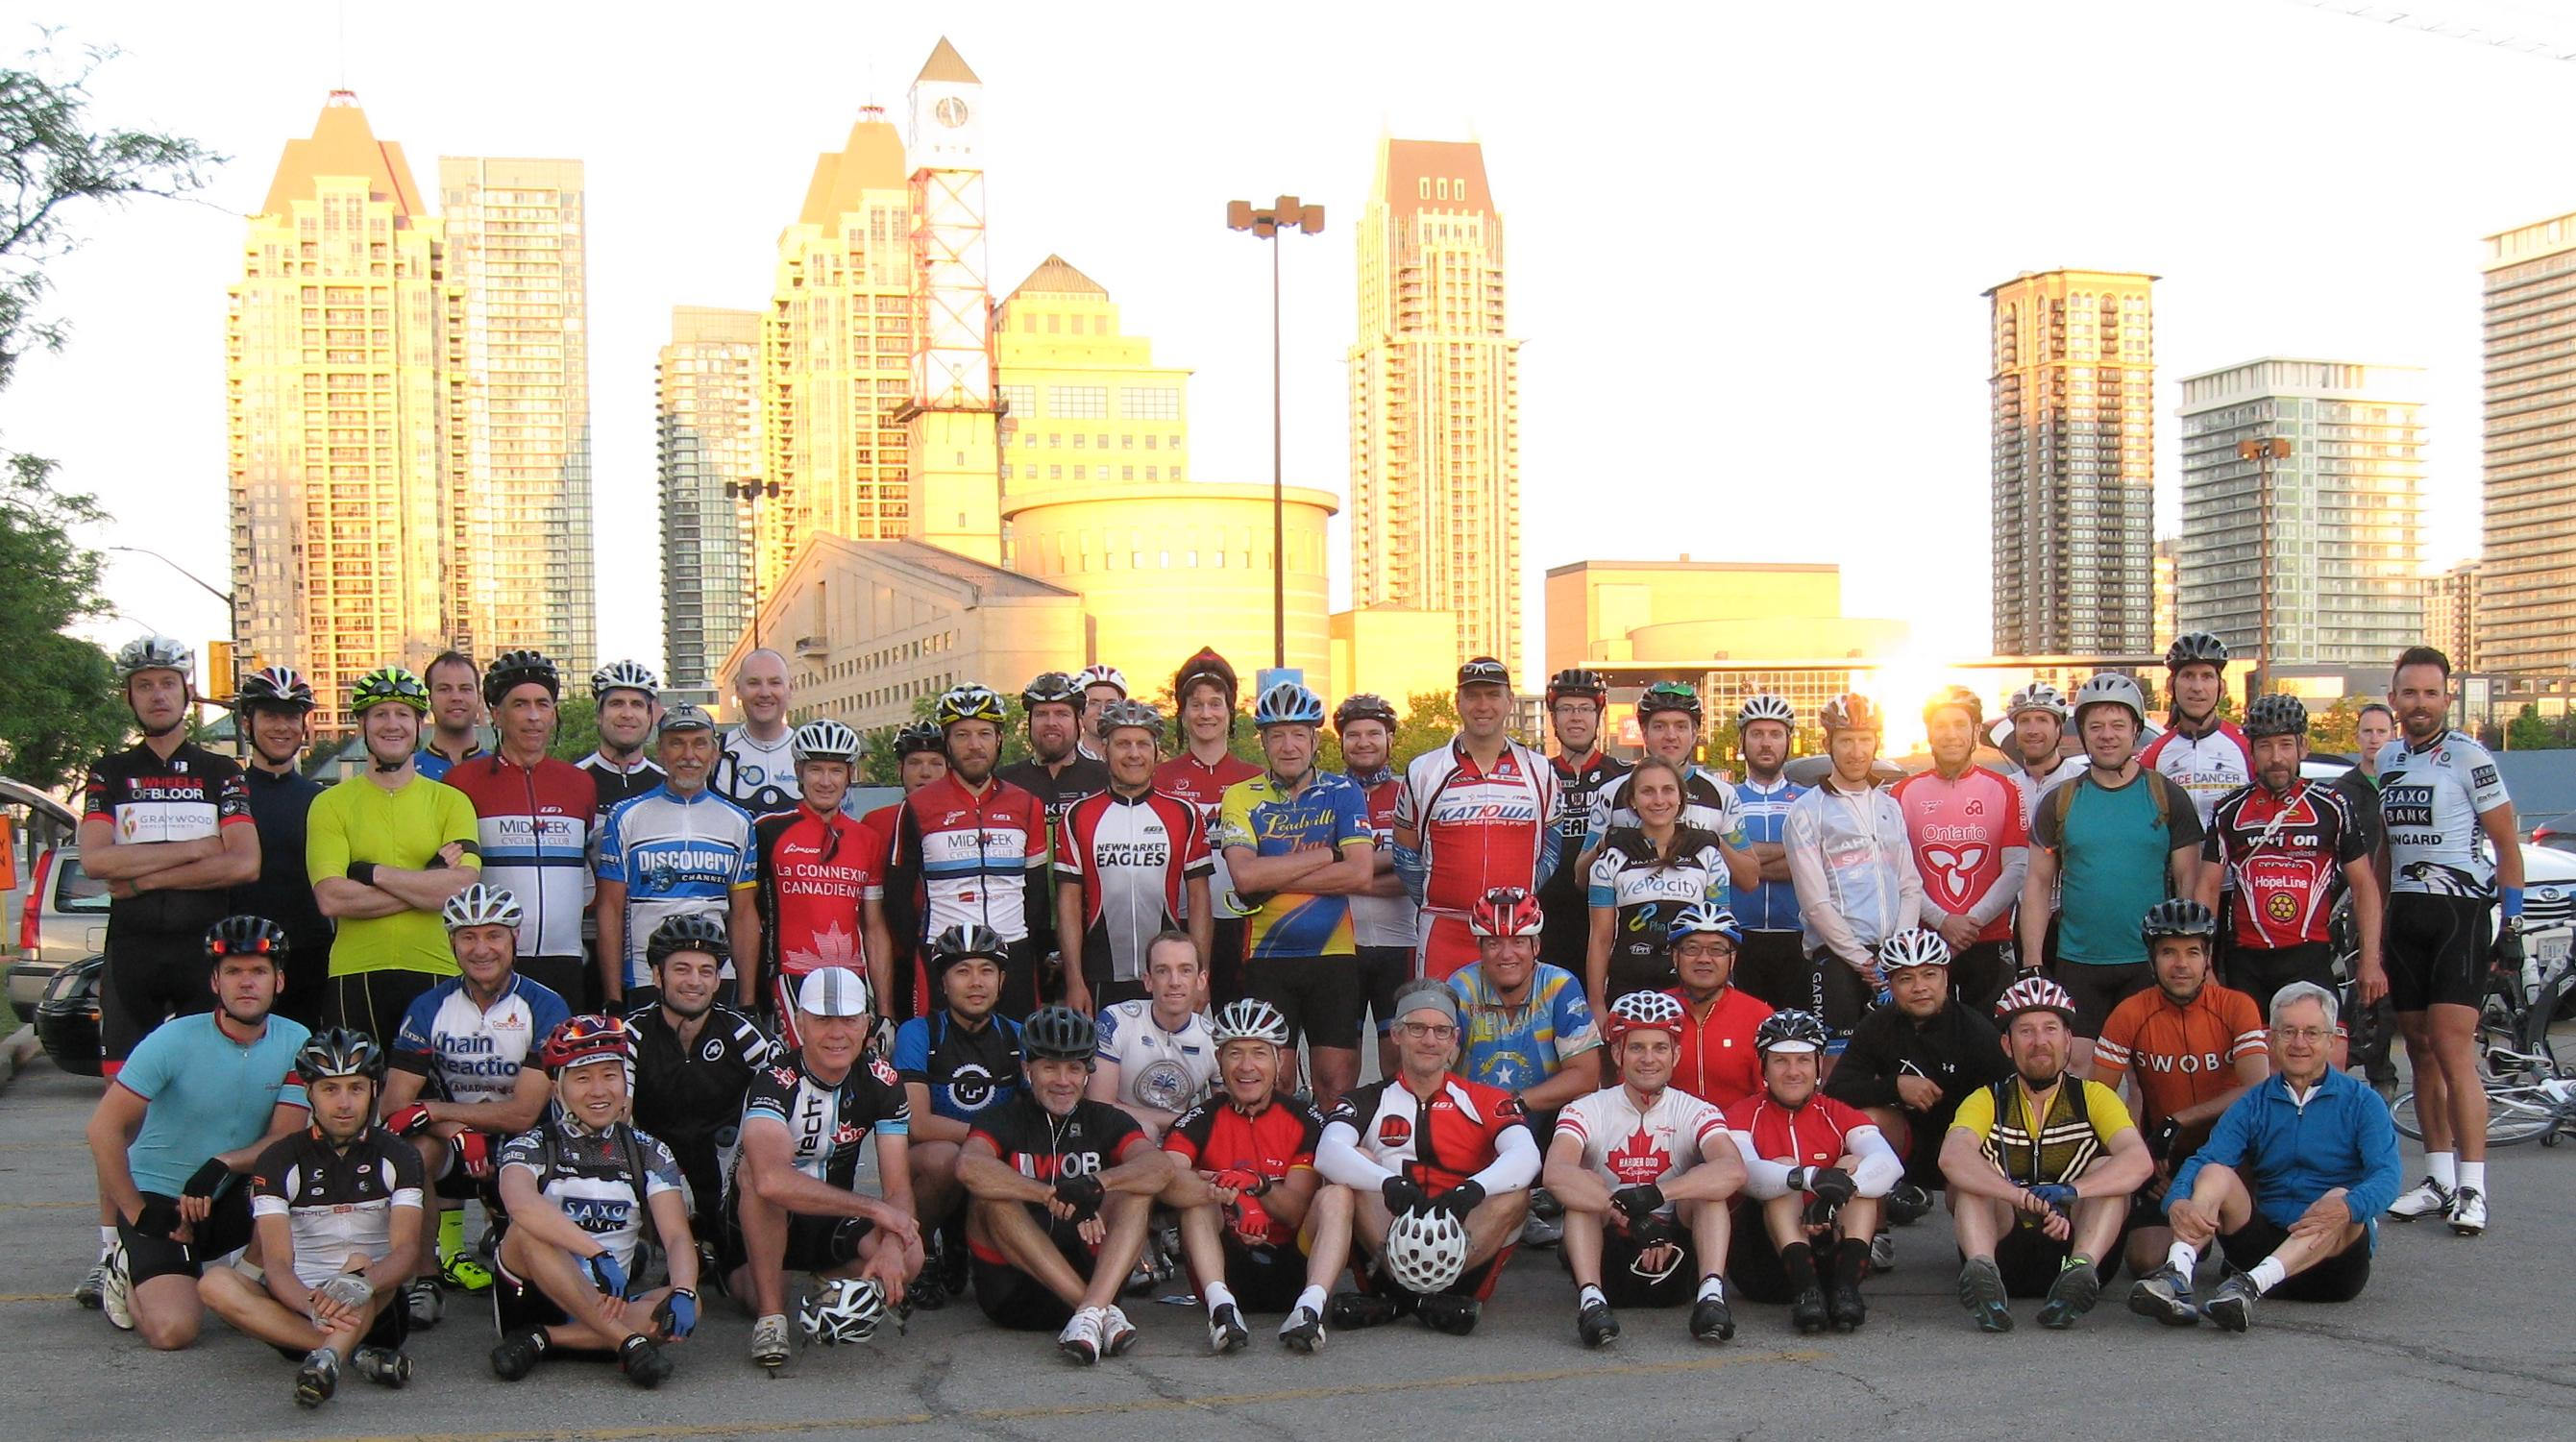 2014 group photo. Most of the starters are in the picture.